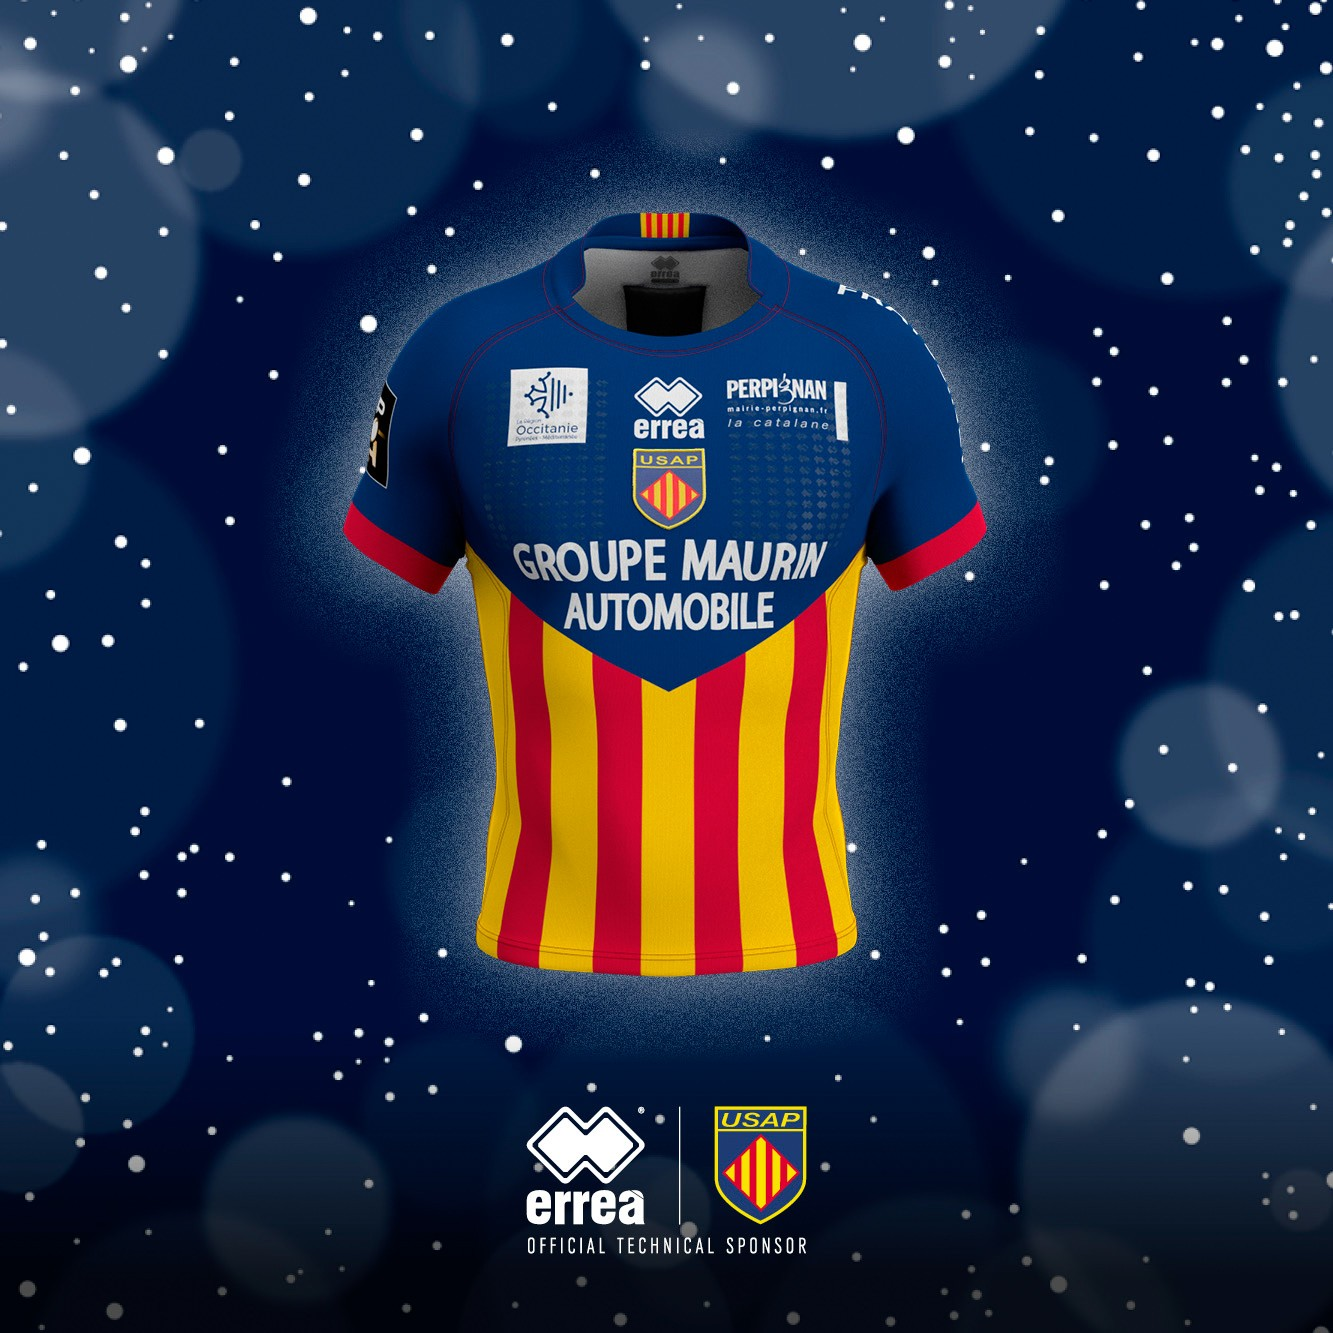 USAP Perpignan's Christmas top sporting the Erreà logo!